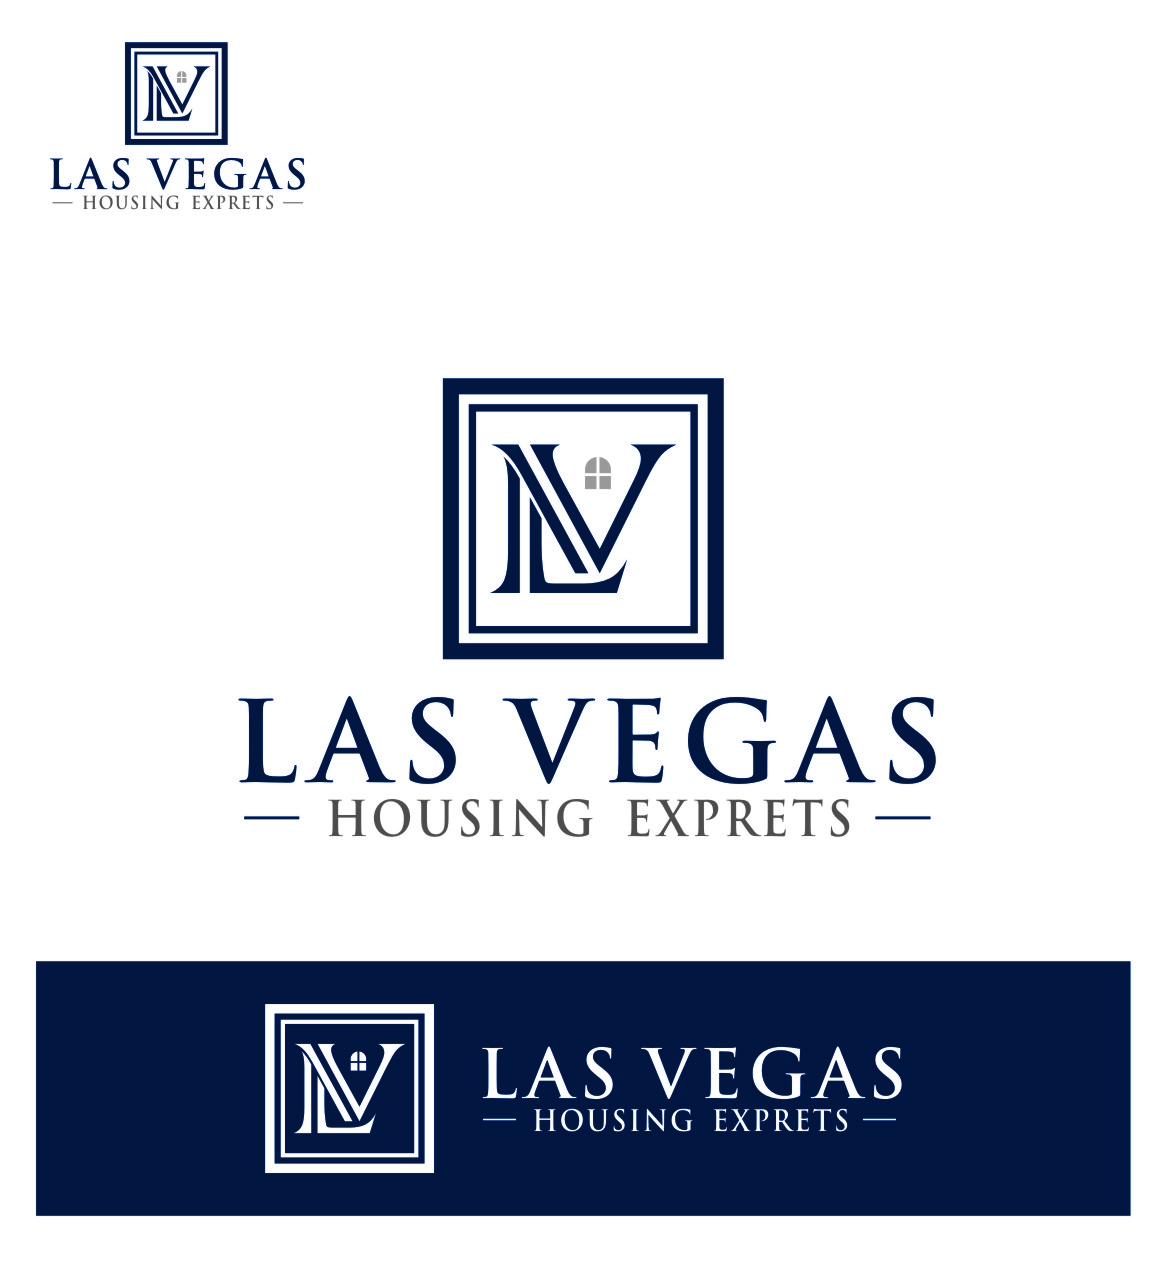 Logo Design by Ngepet_art - Entry No. 51 in the Logo Design Contest Las Vegas Housing Experts Logo Design.